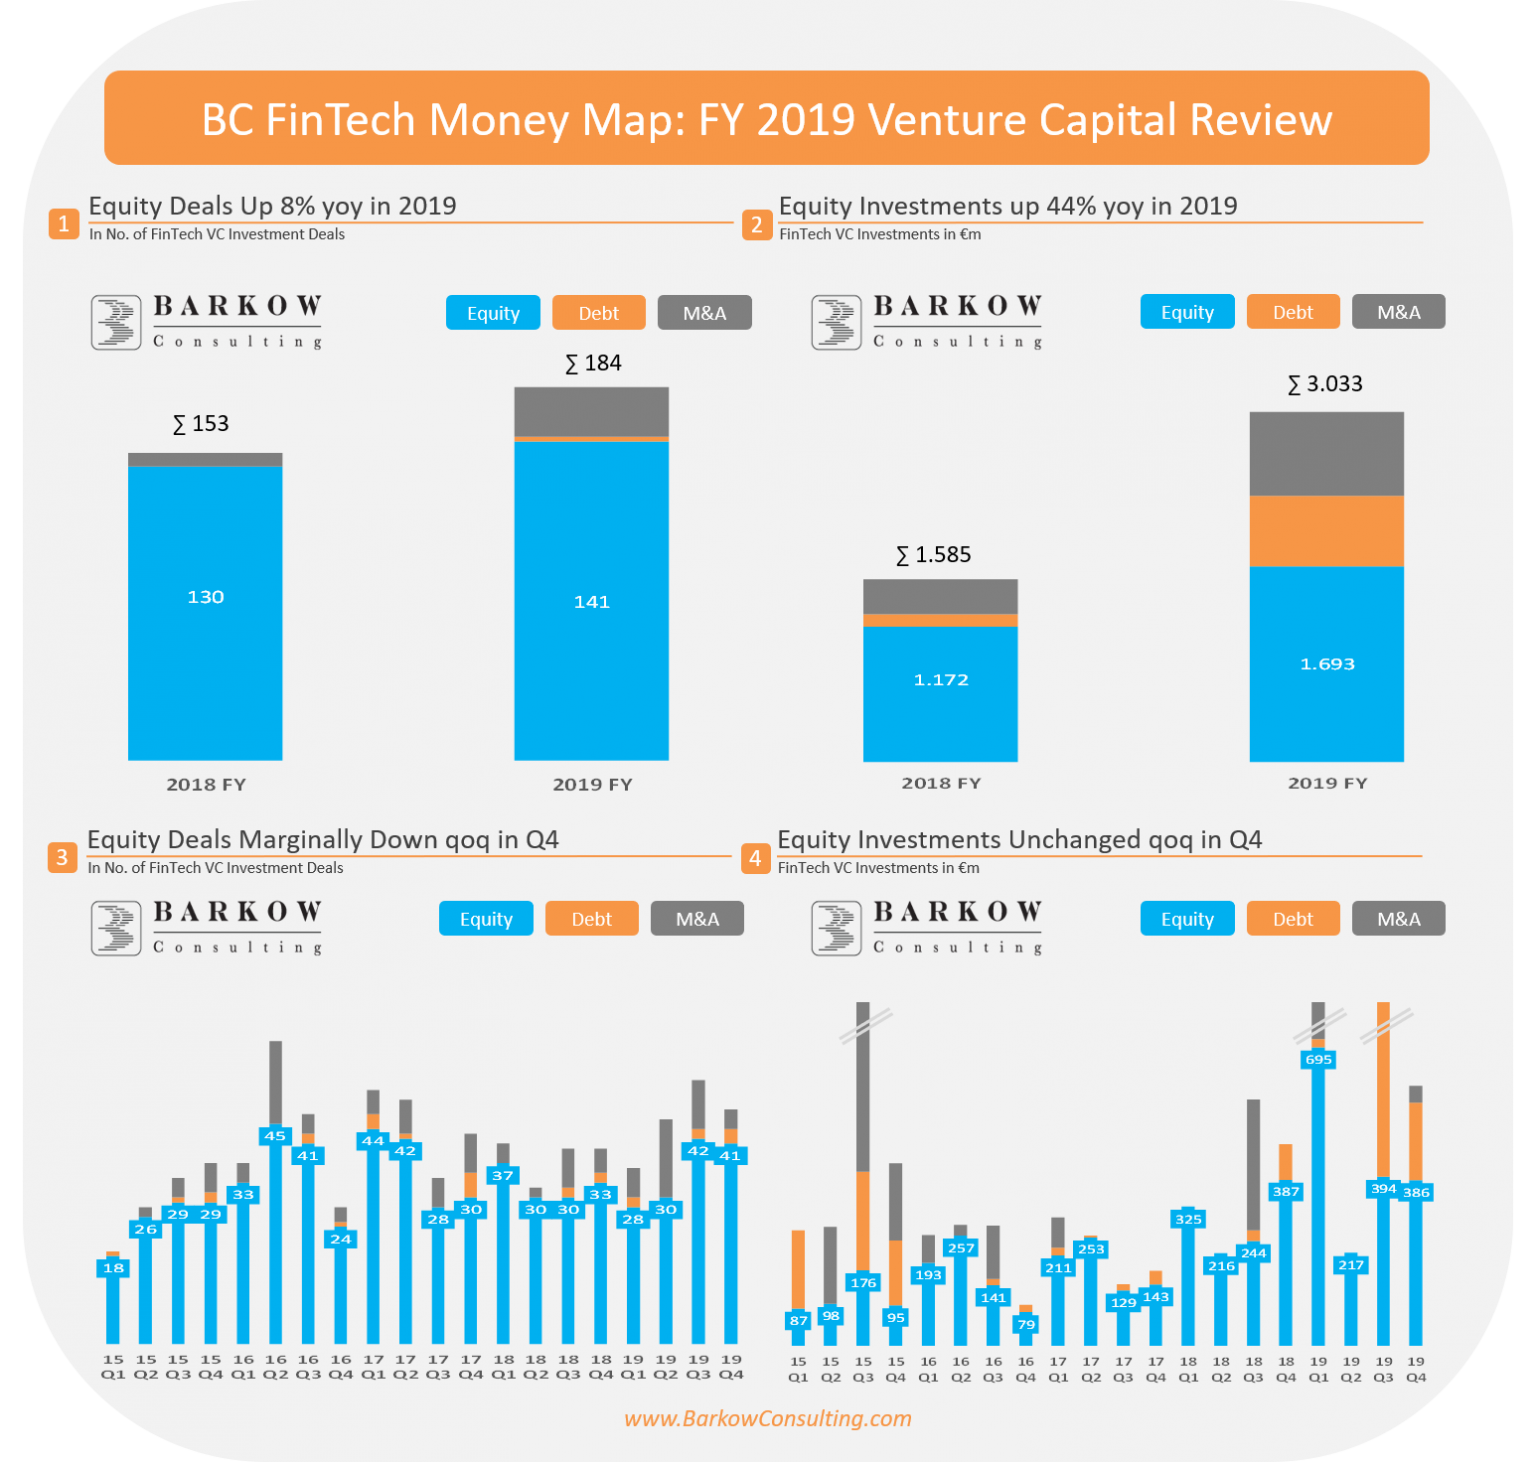 BC Fintech Money Map- FY 2019 Venture Capital Review, Barkow Consulting, January 2020